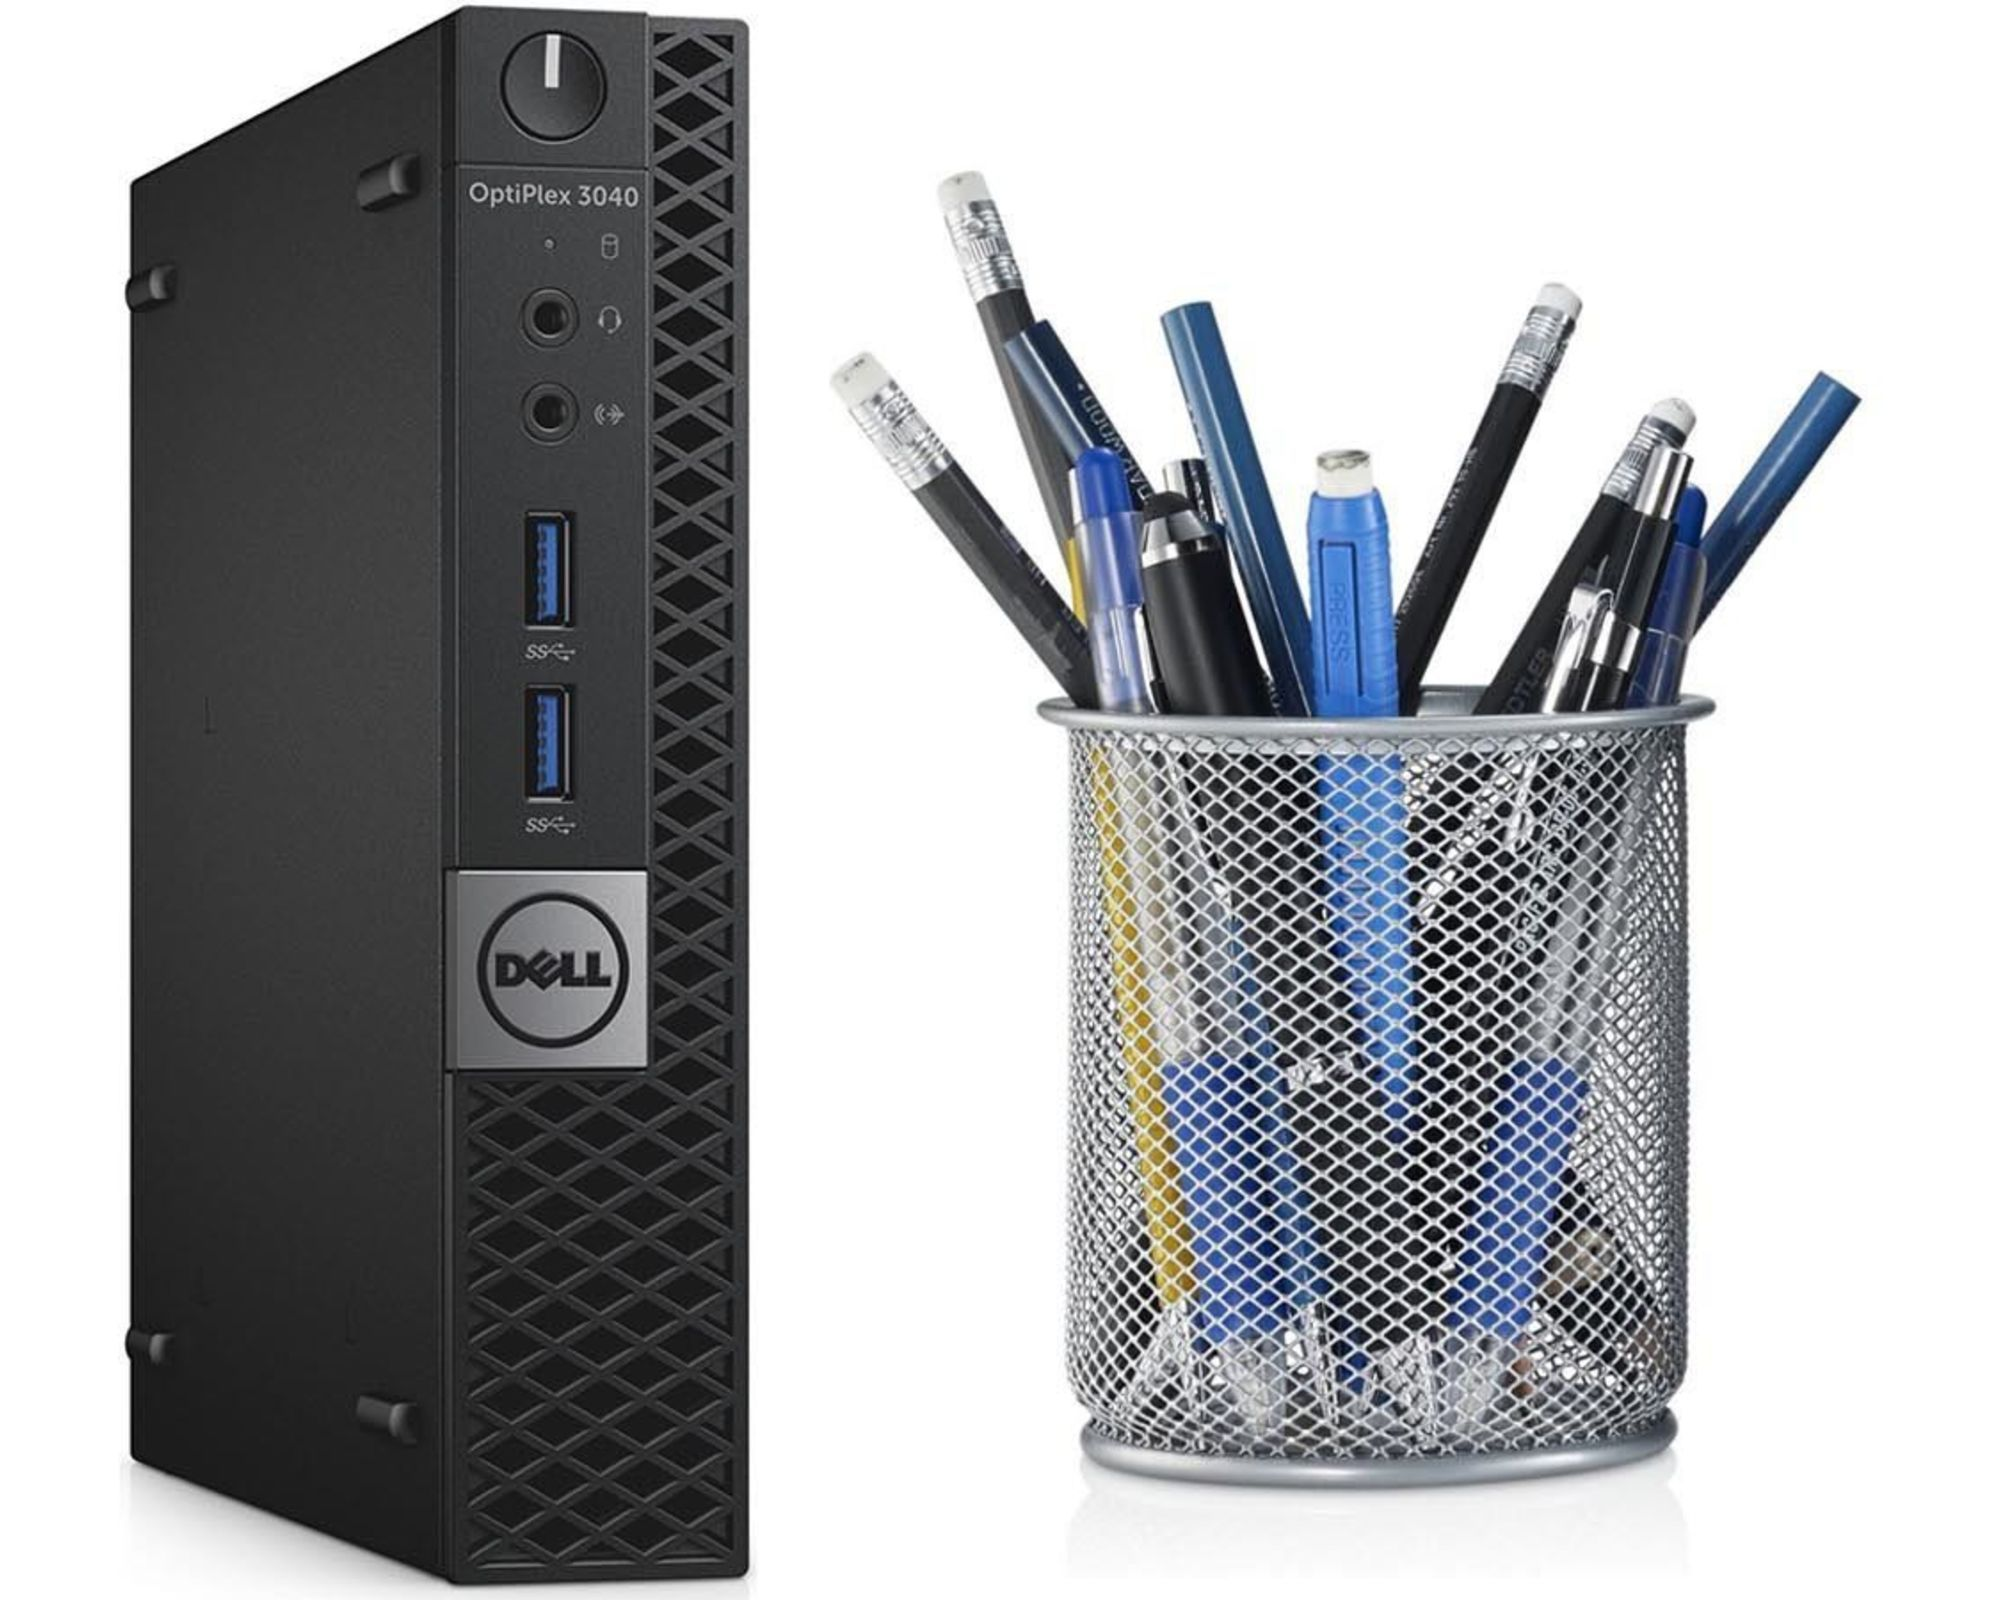 DELL OPTIPLEX 3040 MFF-70085482 - I5(6500T)/ 4G/ SSD 128GB/ VGA Intel 530/ No DVD/ Win10 Pro